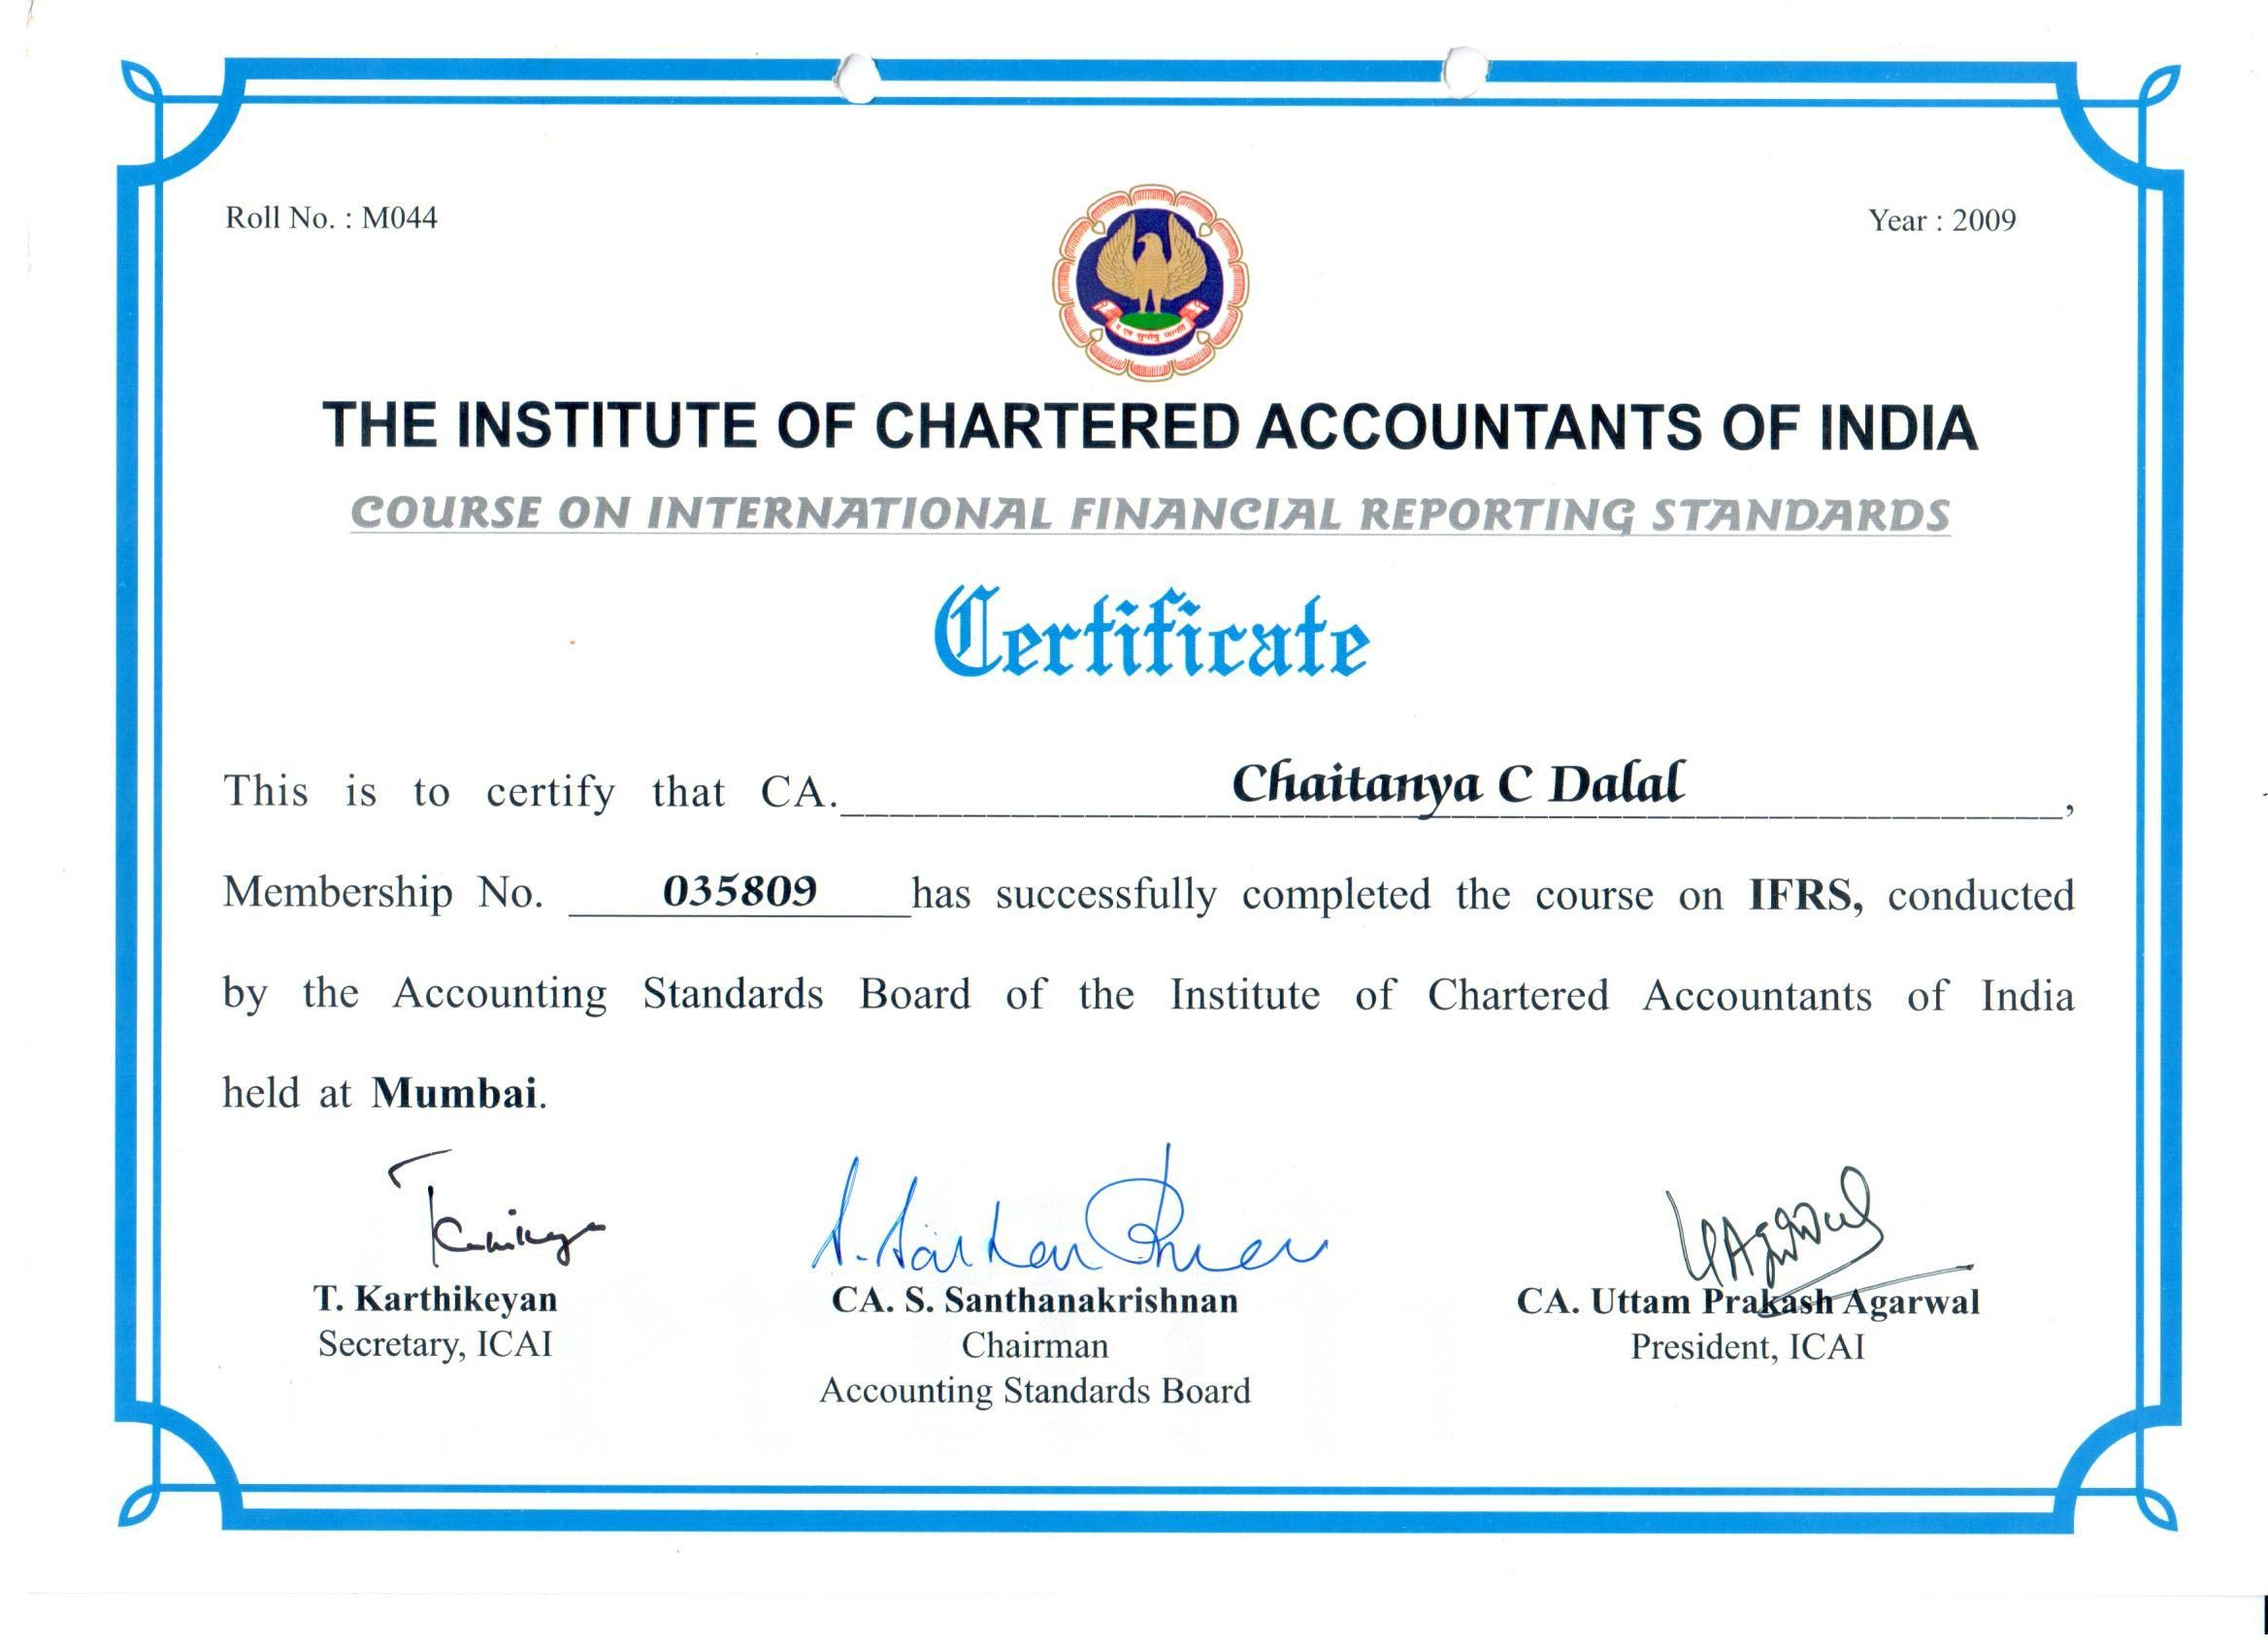 Caccd certificate of a c a certificate of membership certificate of f c a certificate of ifrs xflitez Image collections